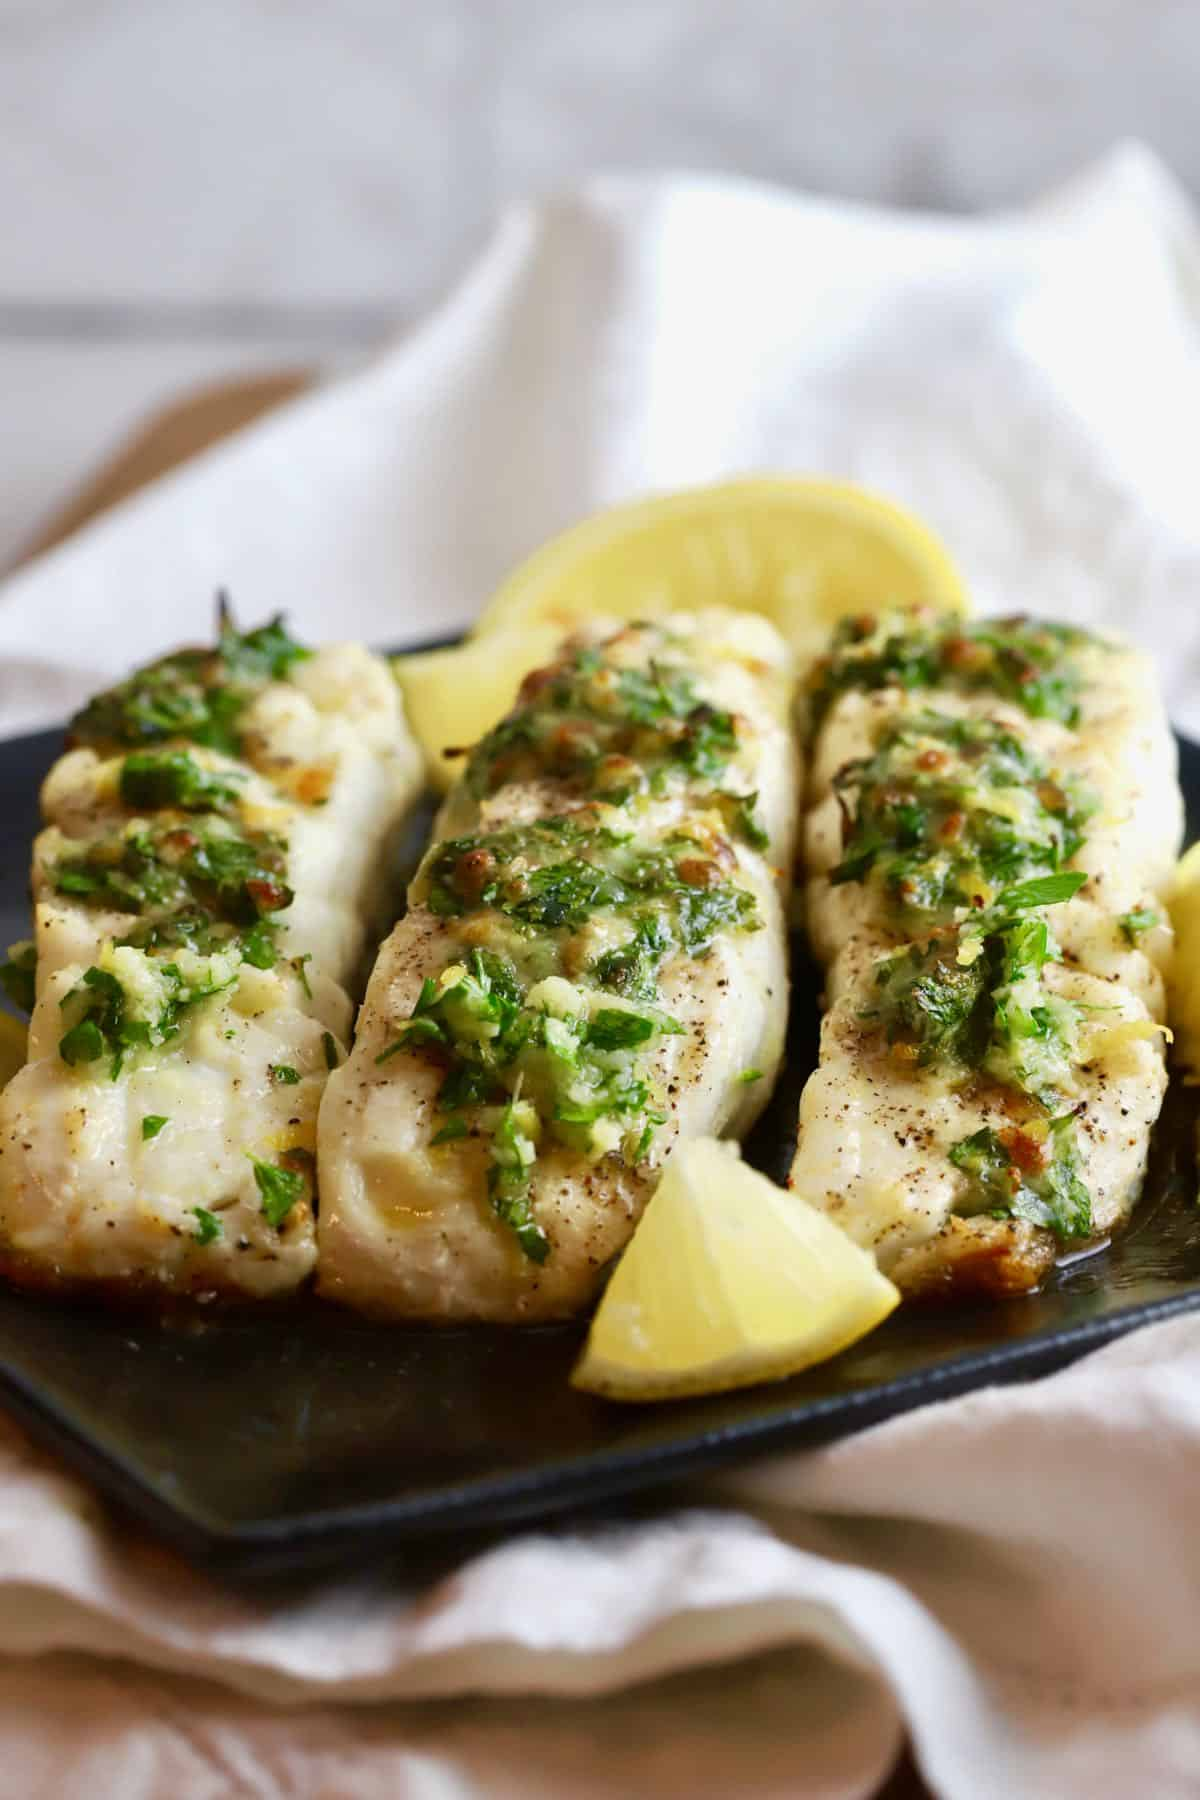 Three broiled halibut fillets on a black plate.